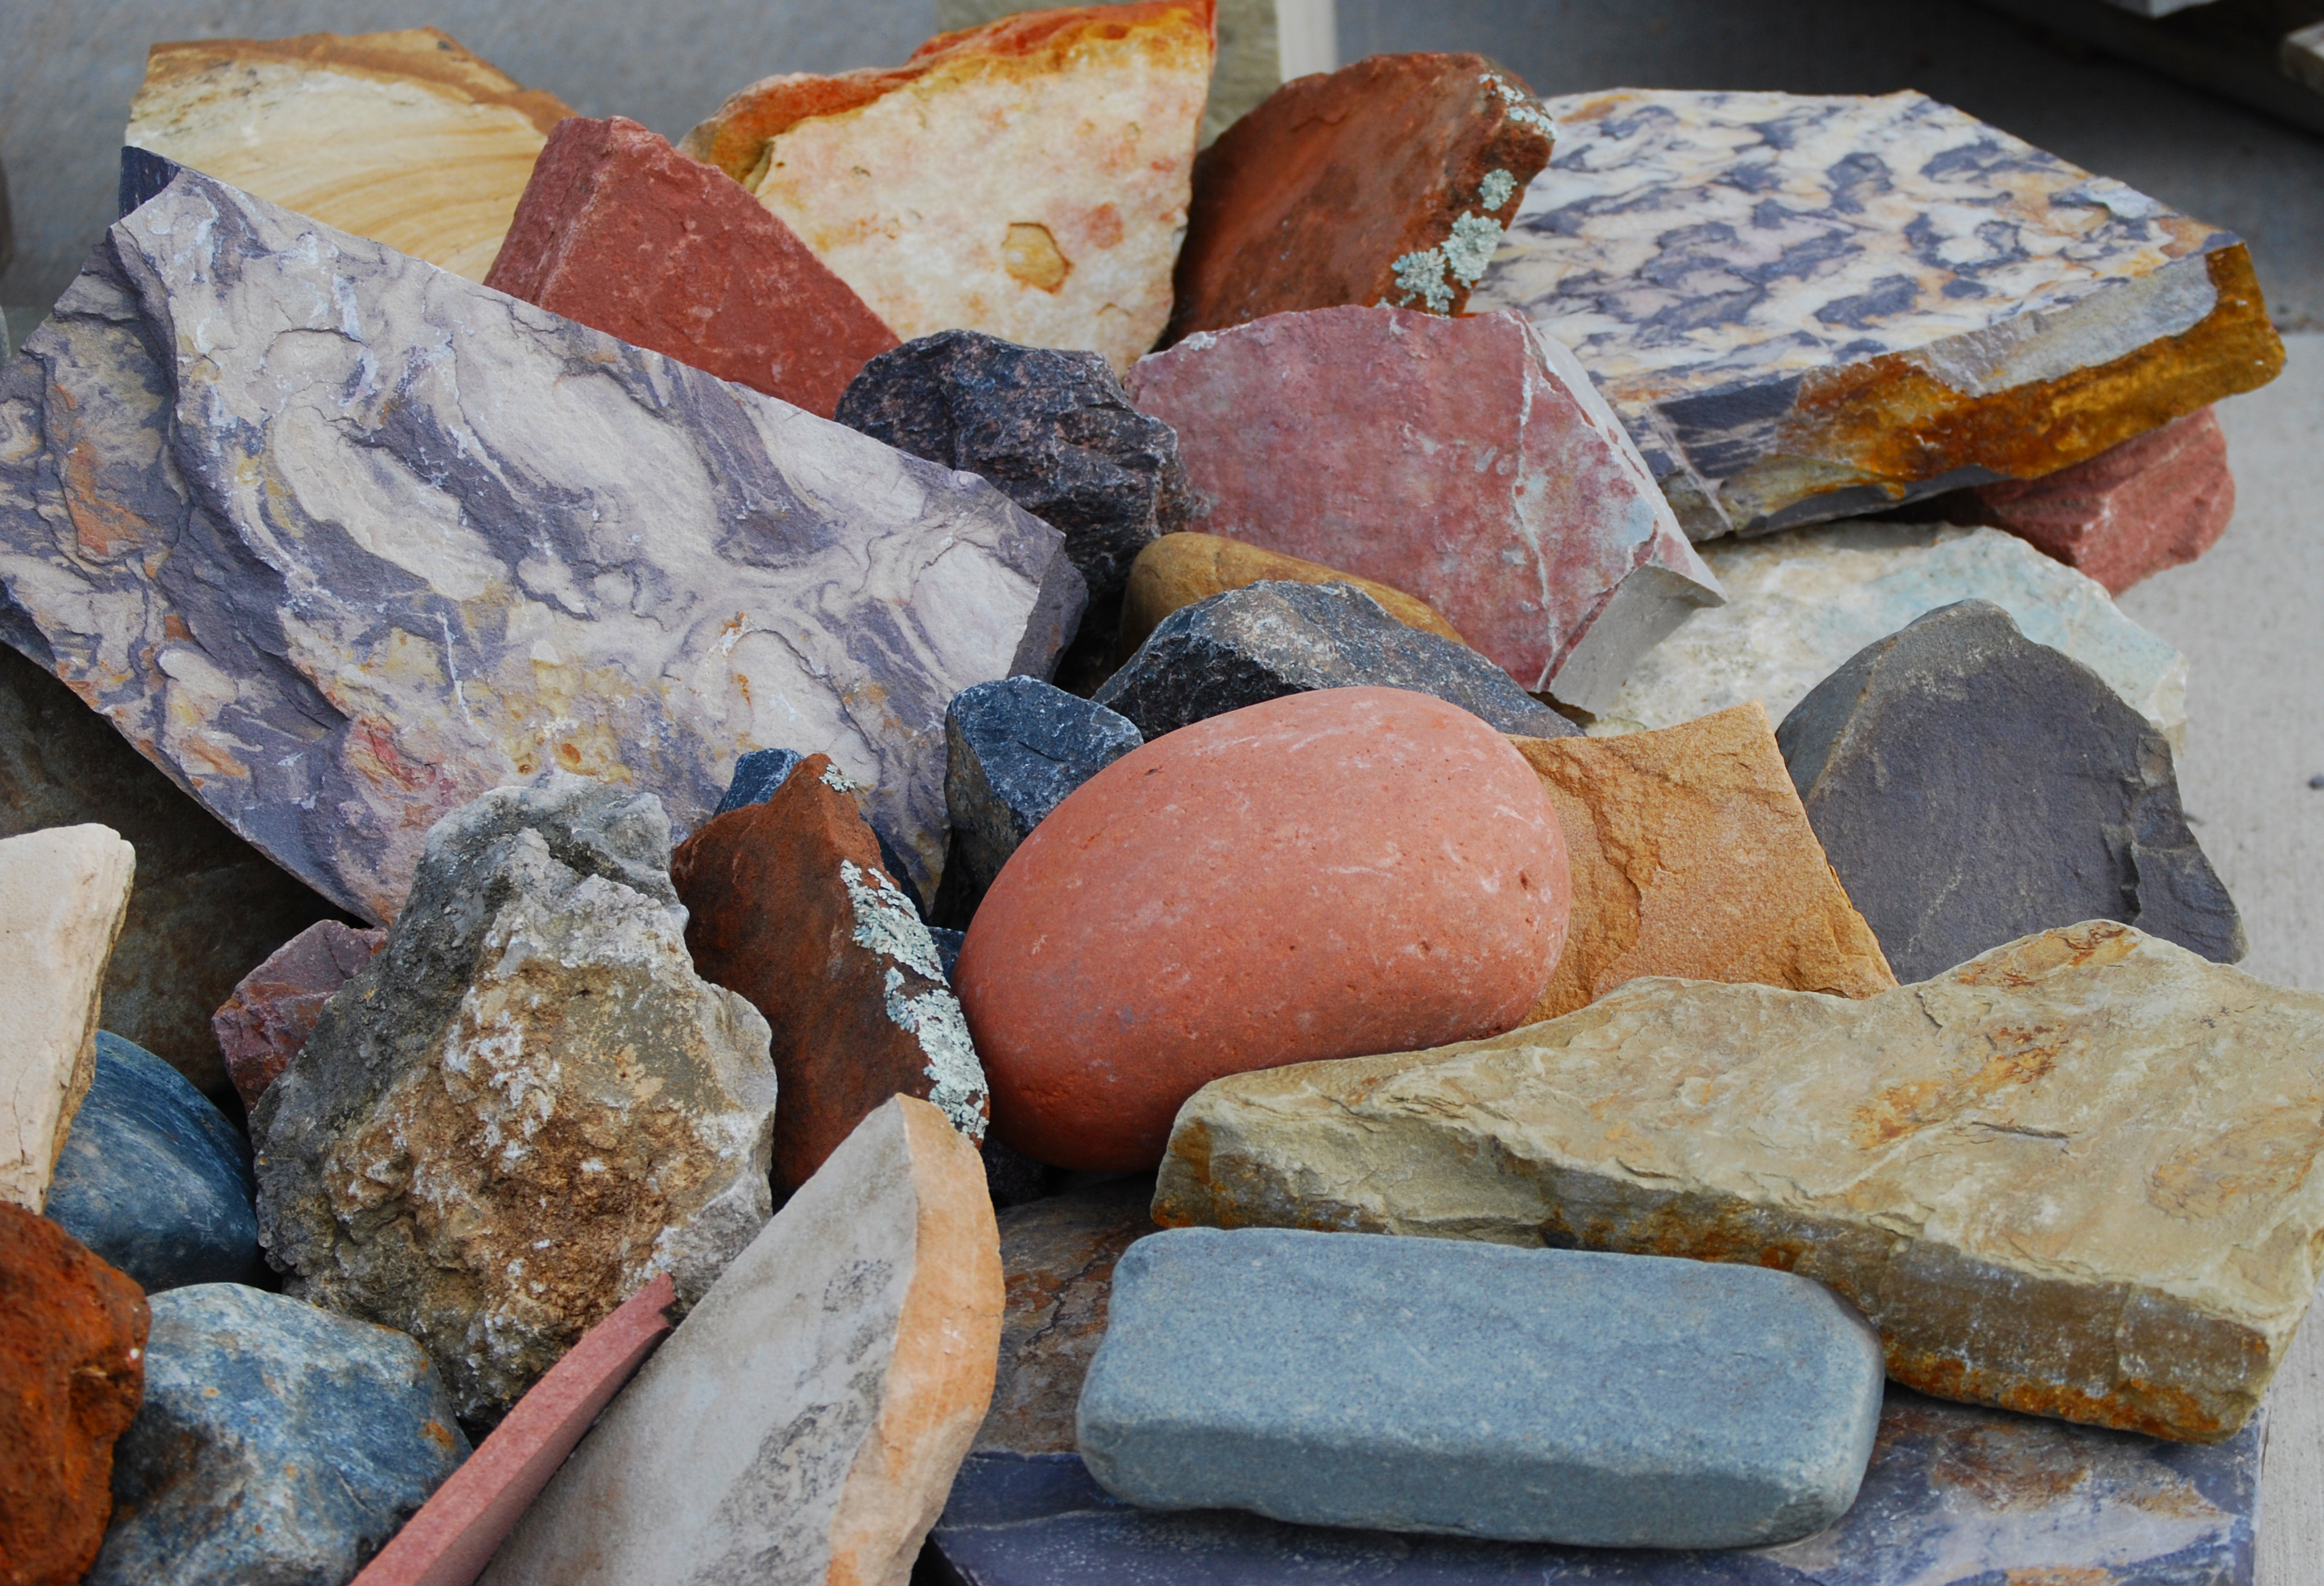 Landscaping Rocks Names : Decorative rocks with names boulders and landscape